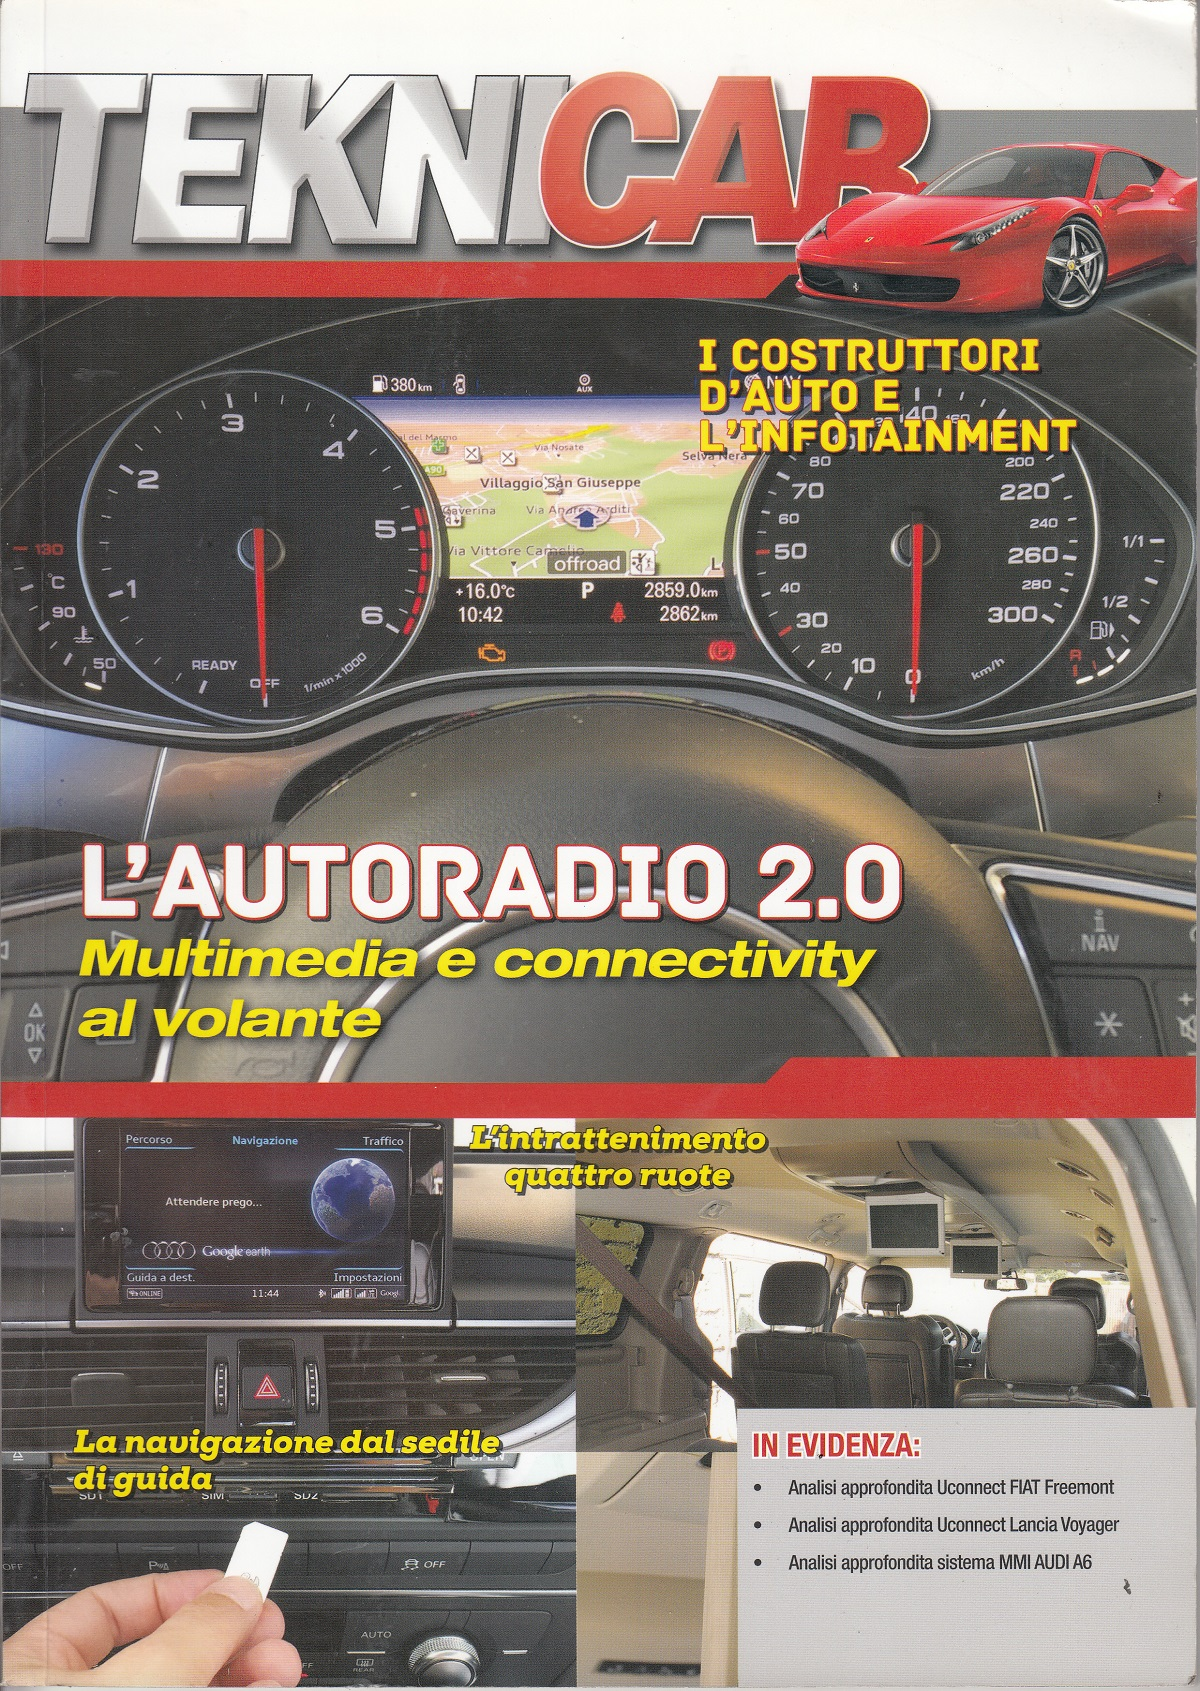 VOLUME 19 - L'Autoradio 2.0 multimedia e connectivity al volante